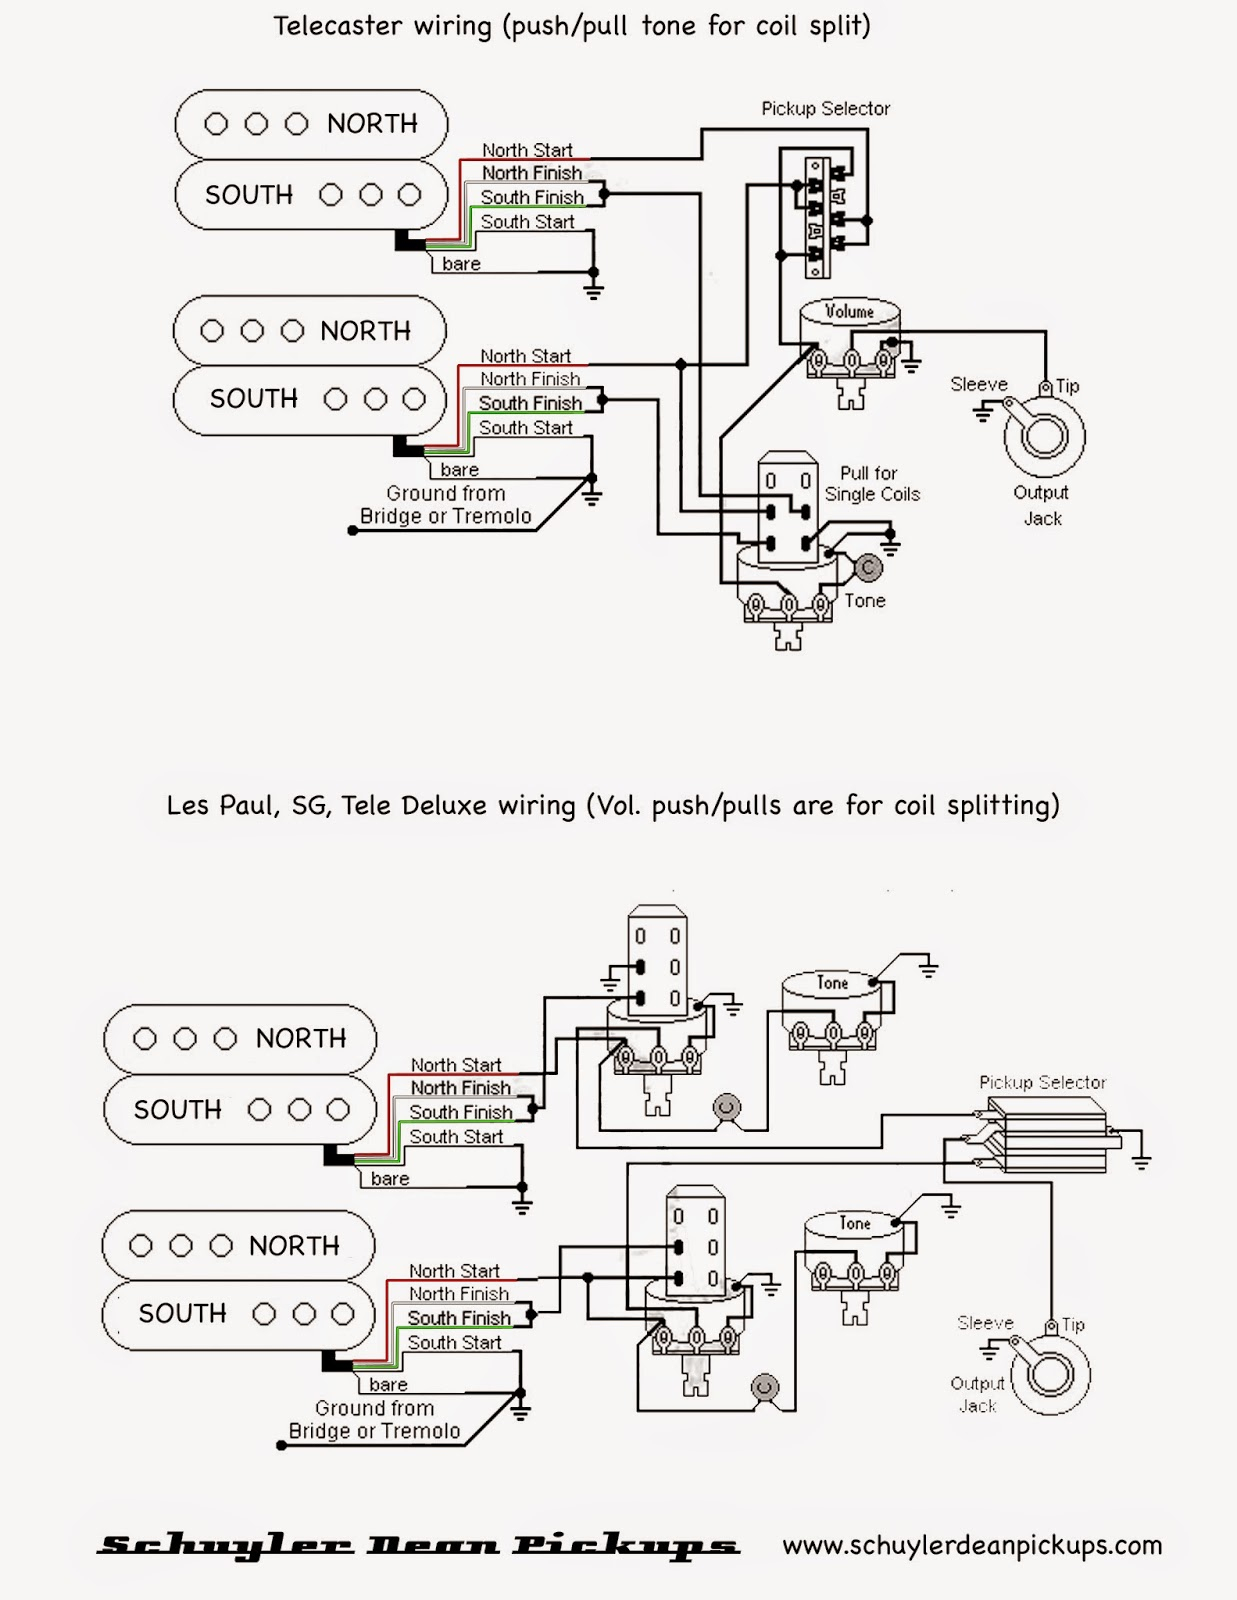 Pull Pot Humbucker Coil Split Wiring Diagram | Wiring Diagram - Hss Wiring Diagram Coil Split